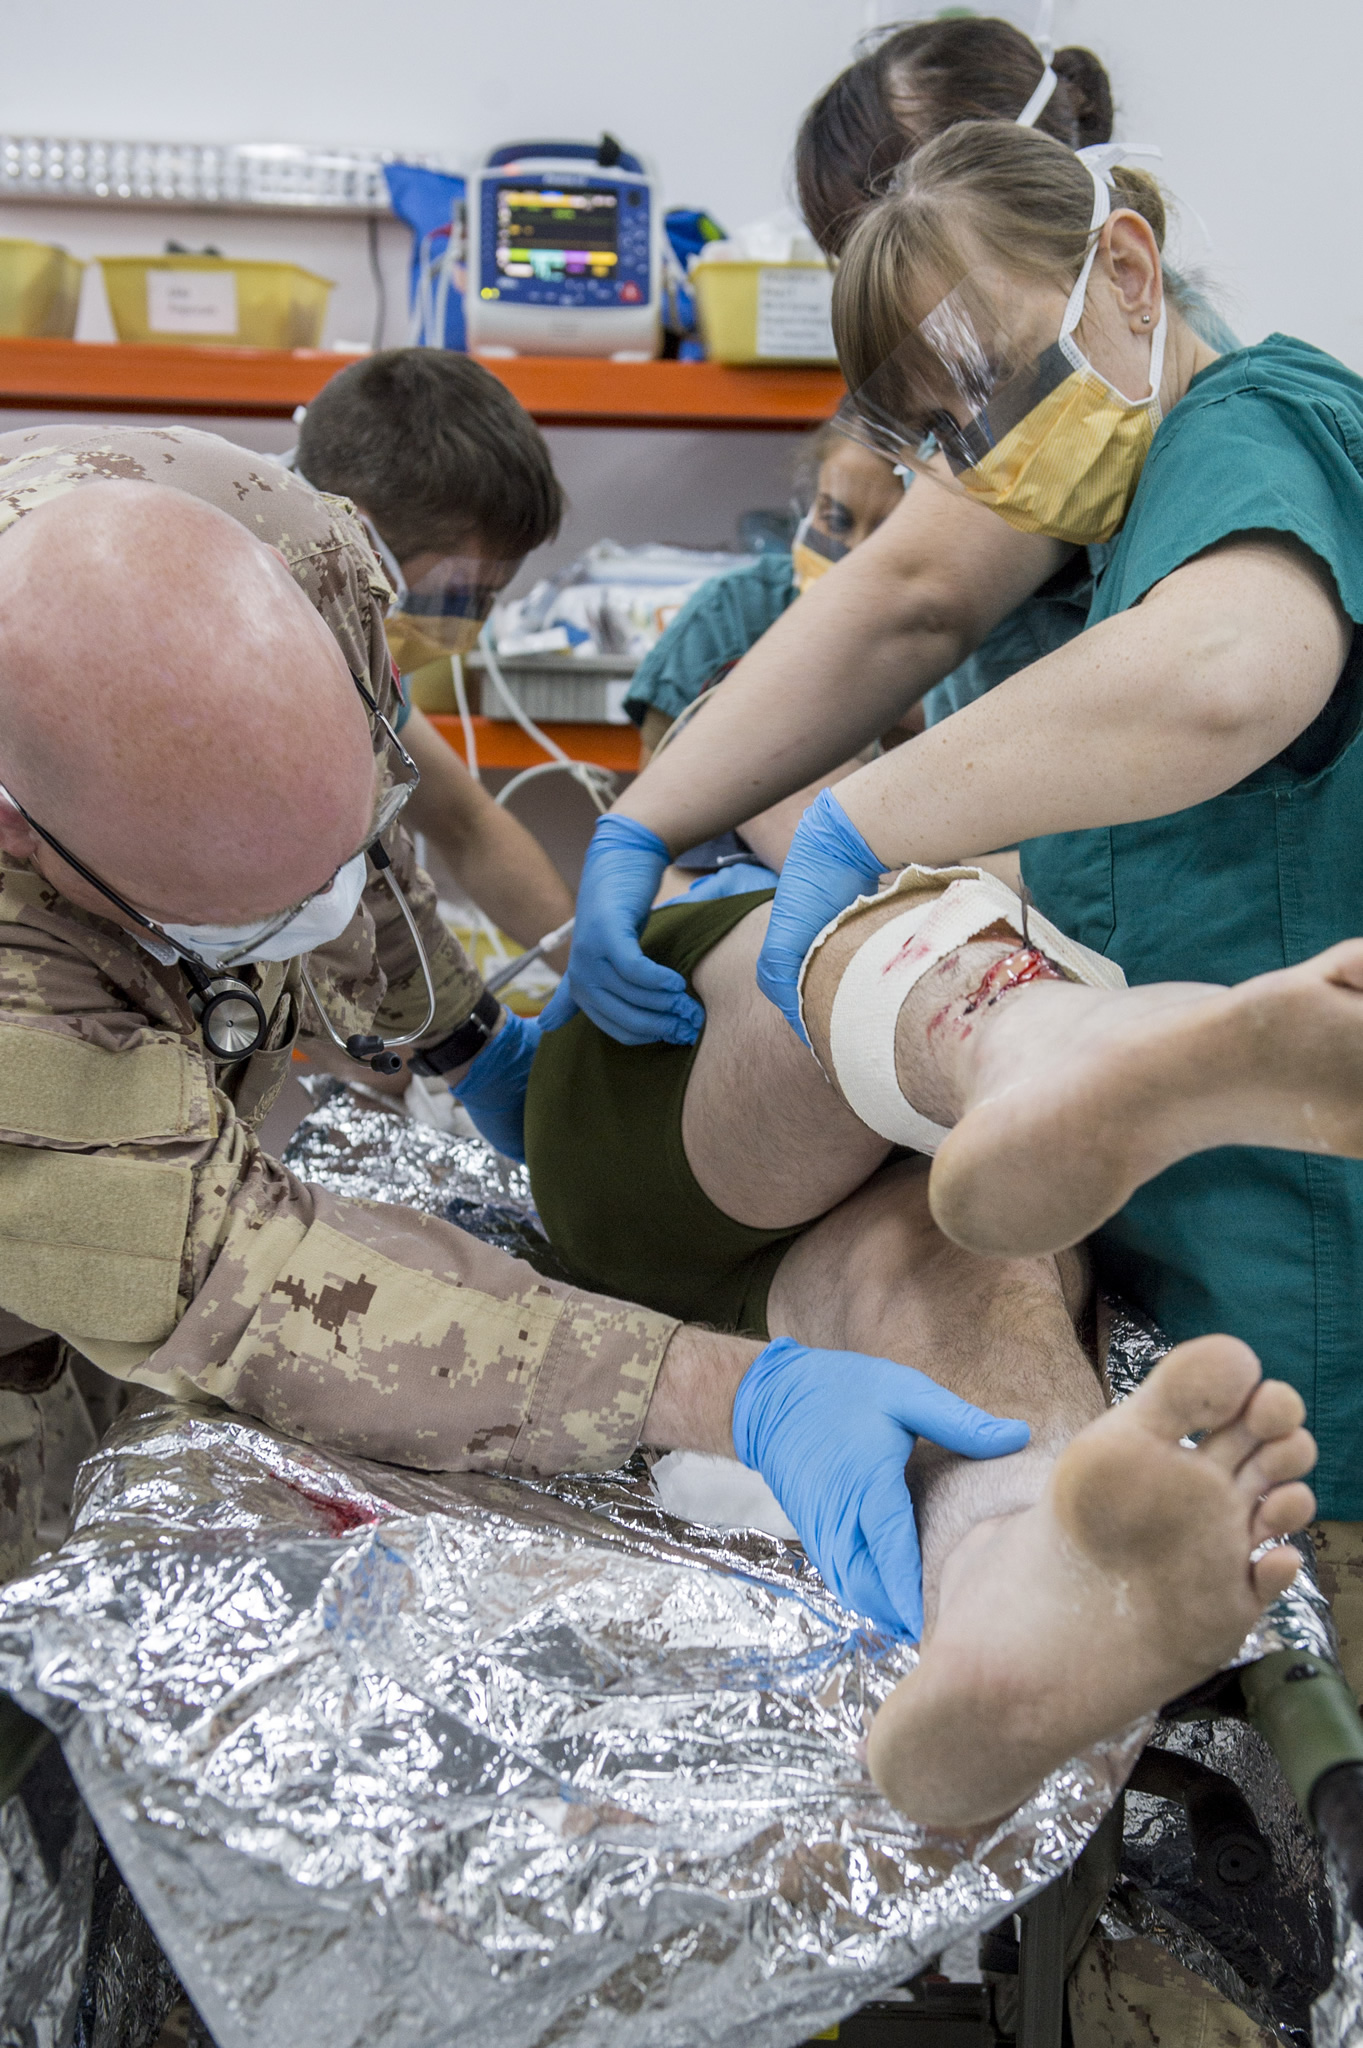 A Canadian Armed Forces physician assistant checks a simulated patient for hidden wounds during training at the Role 2 medical facility during Operation IMPACT in Northern Iraq on November 24, 2016. (Photo: Canadian Forces Combat Camera)